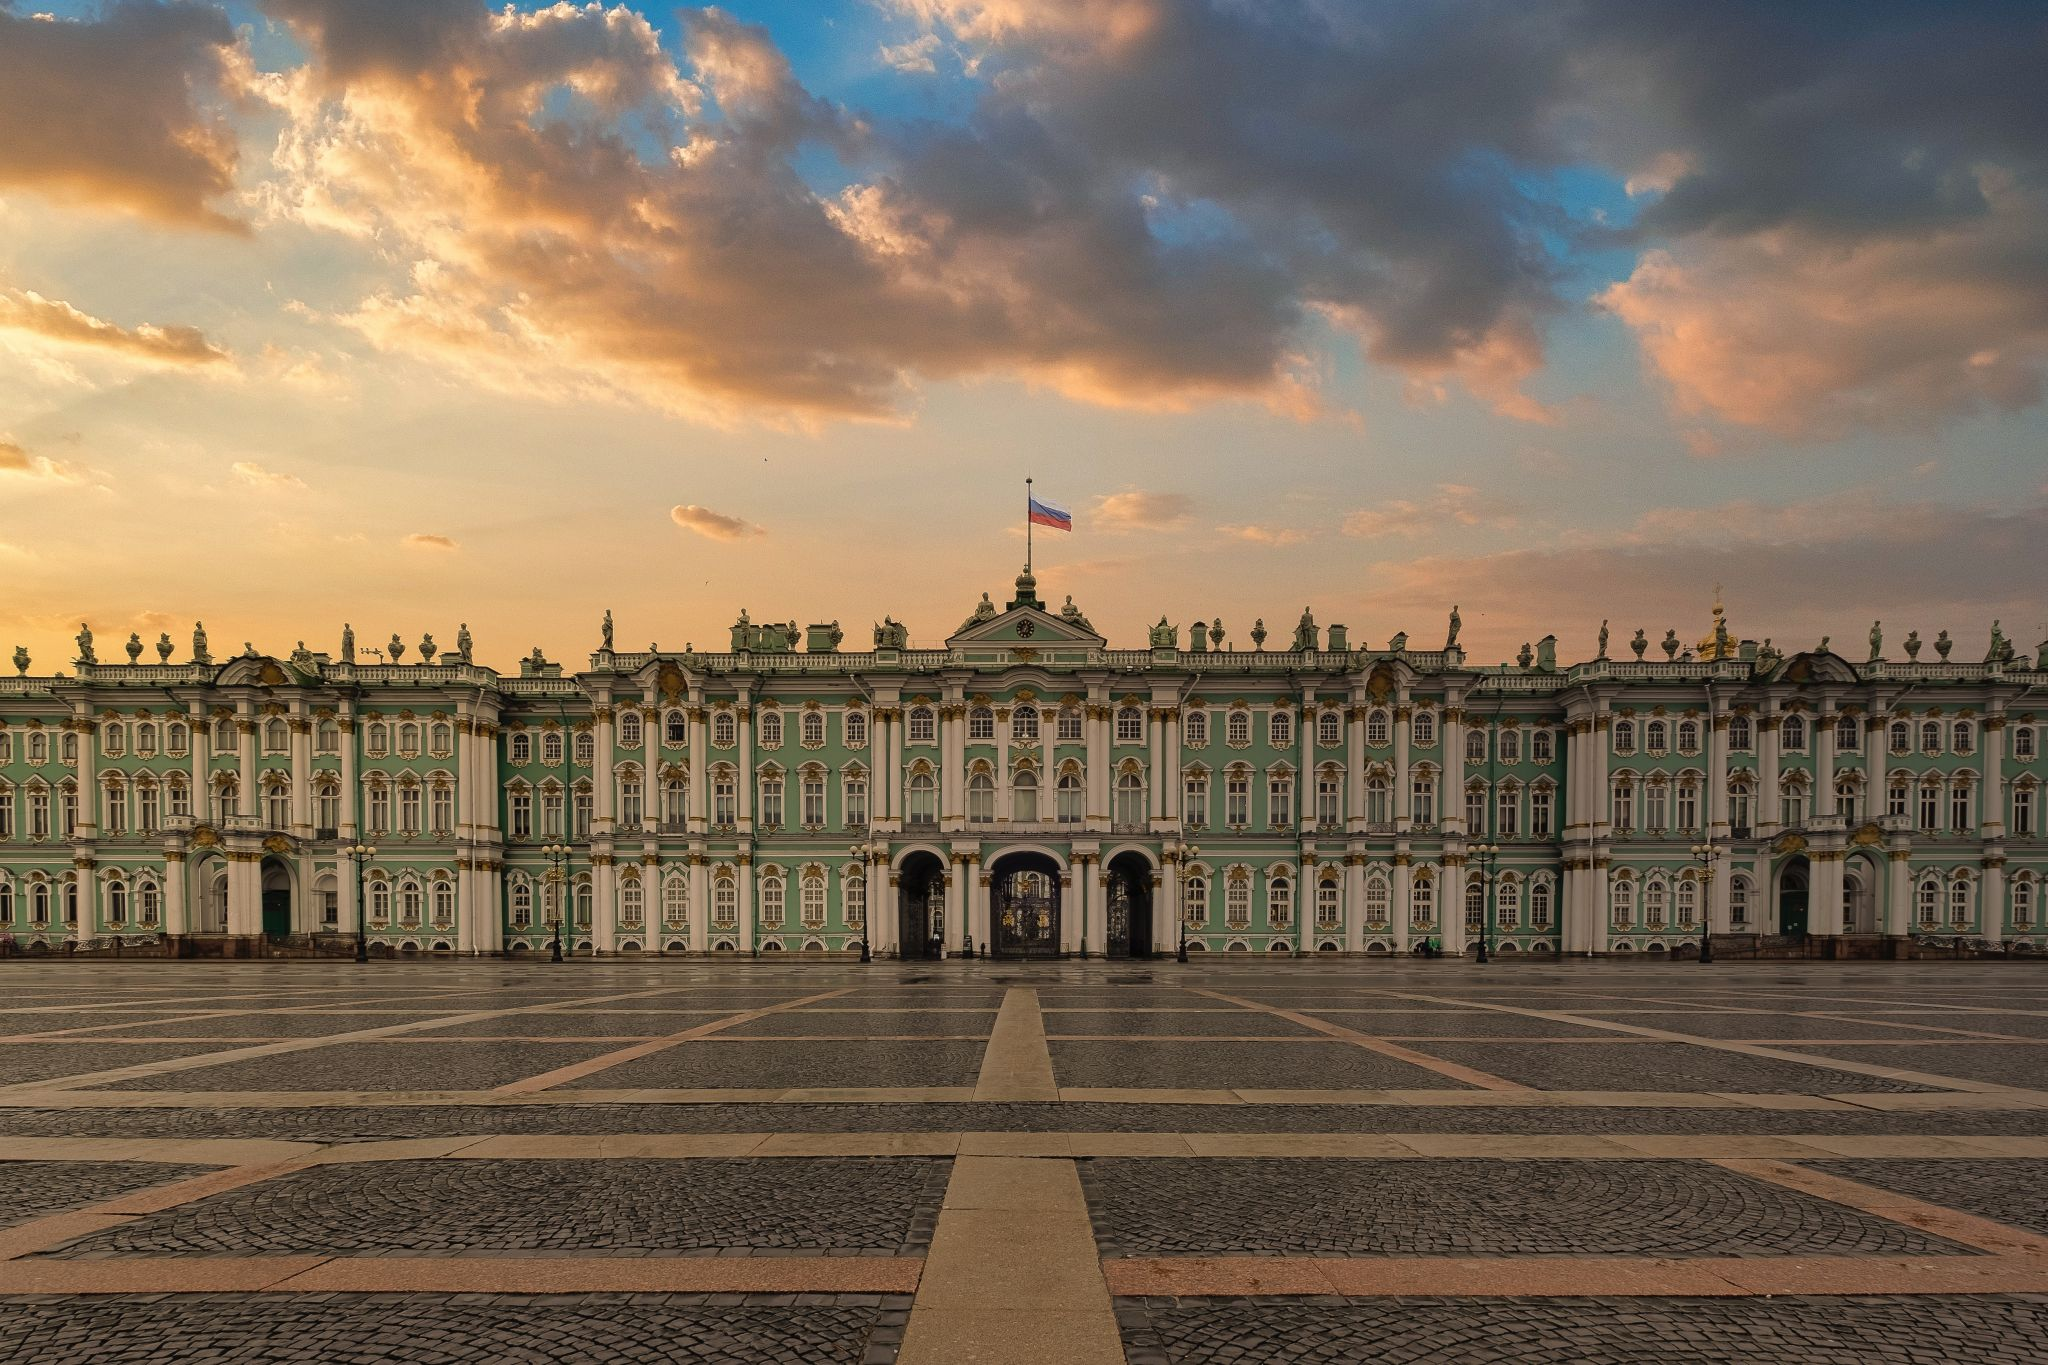 State Hermitage Museum, Russian Federation